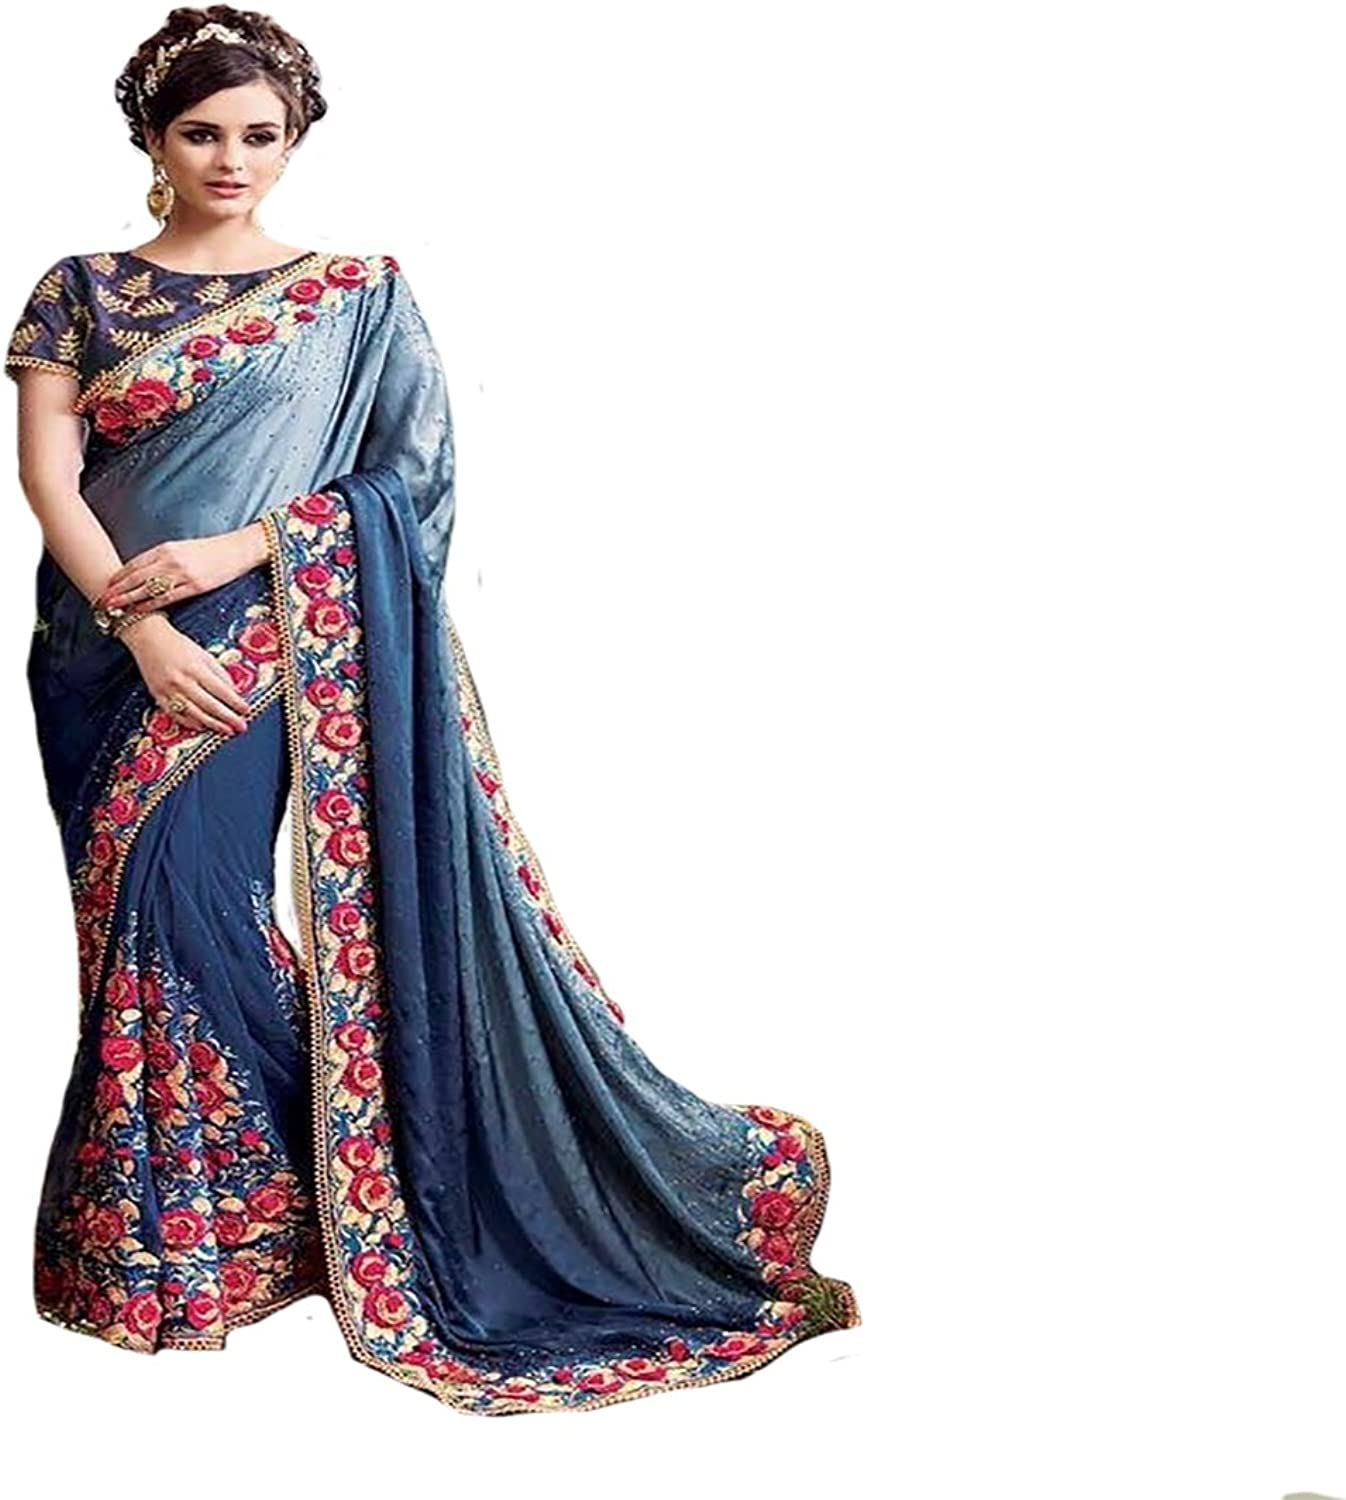 New Launched Bridal Collection Saree Sari Formal Wedding Ceremony 8717